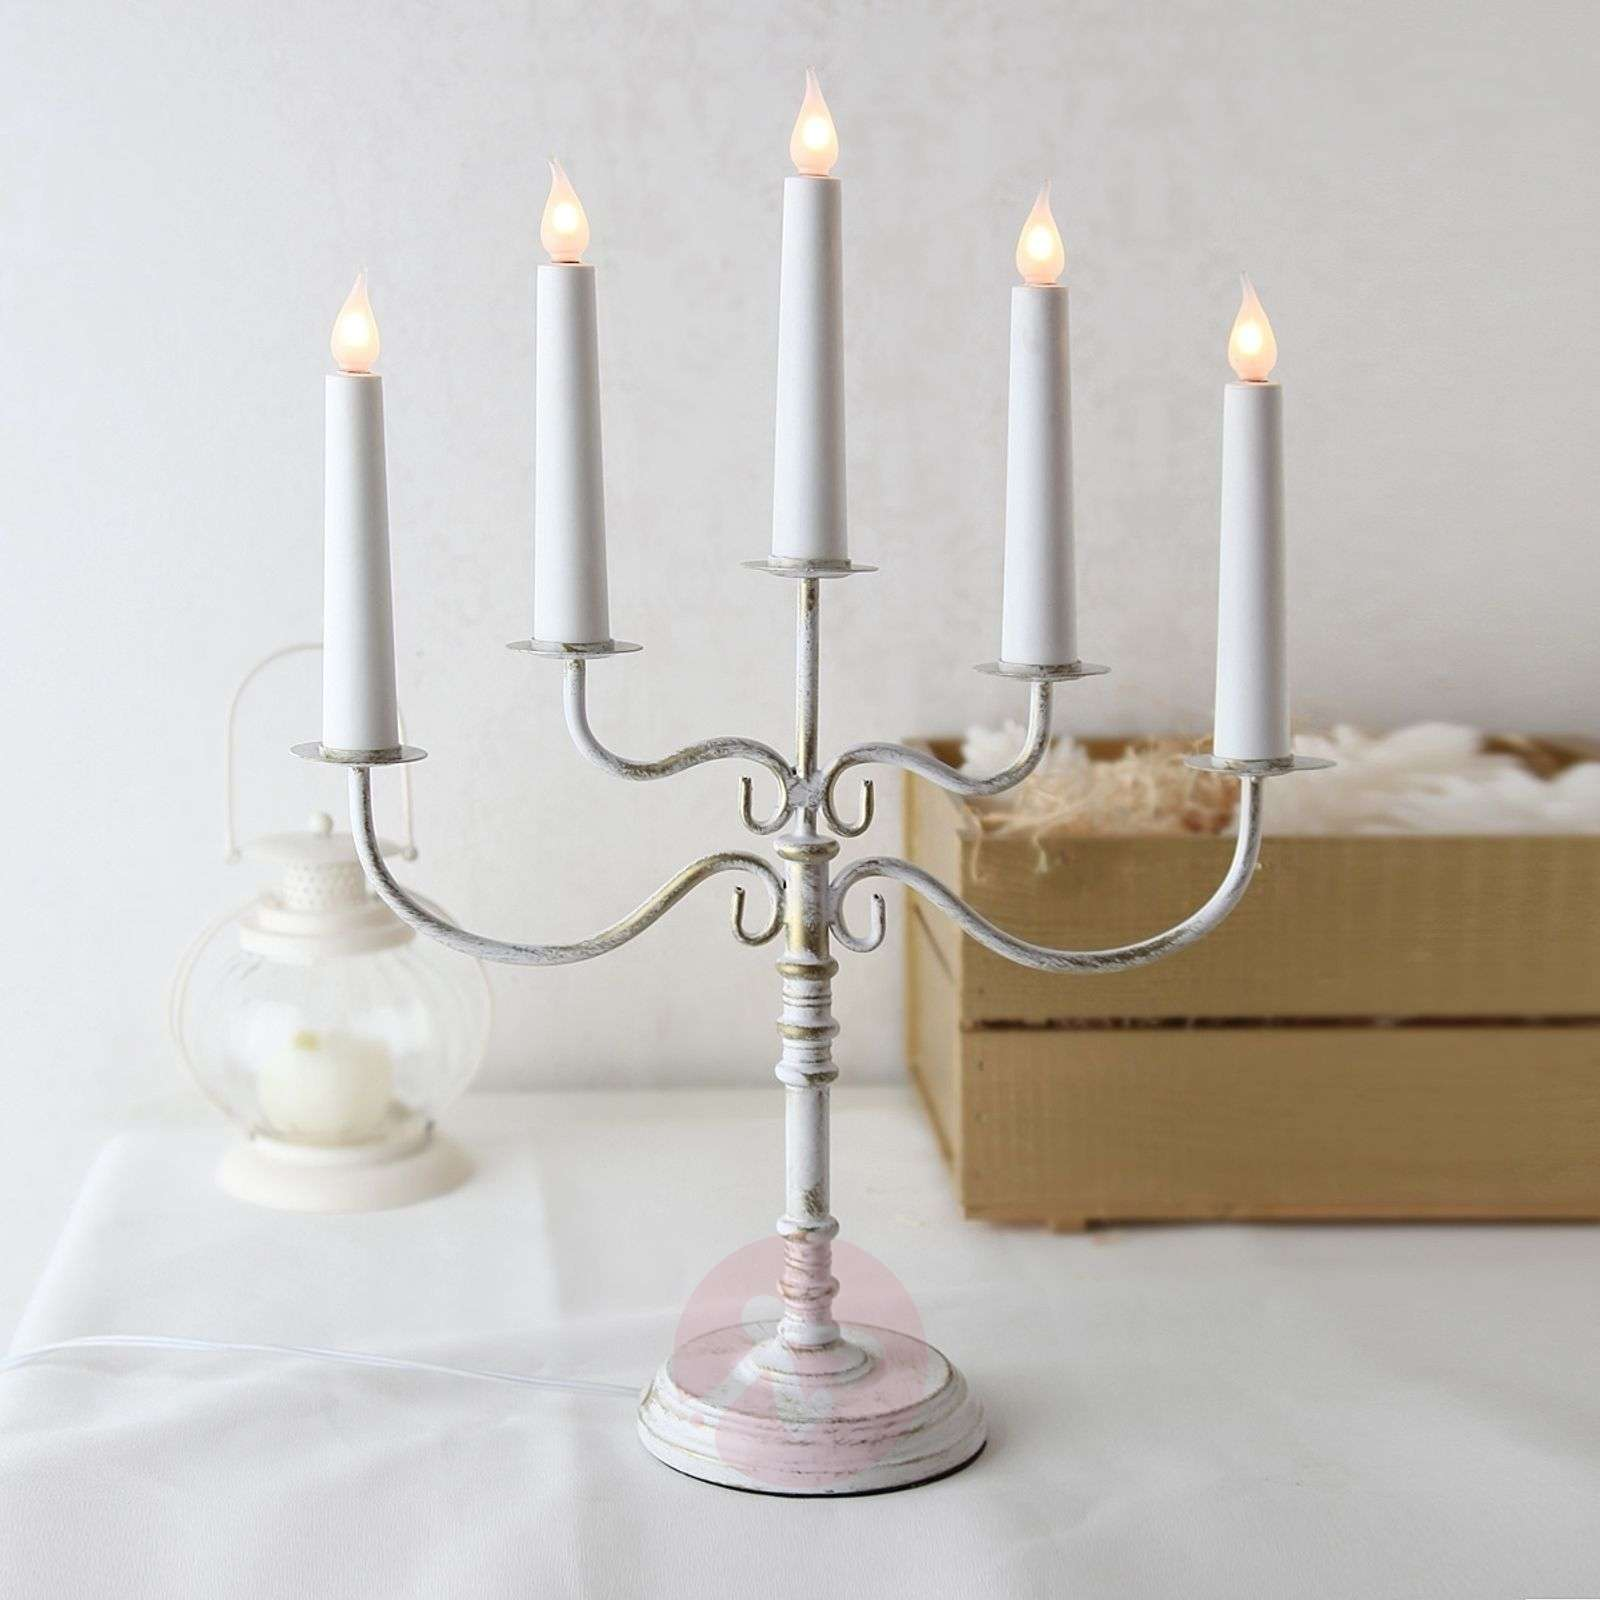 Romantic candleholder Romantika, white-1522368-01